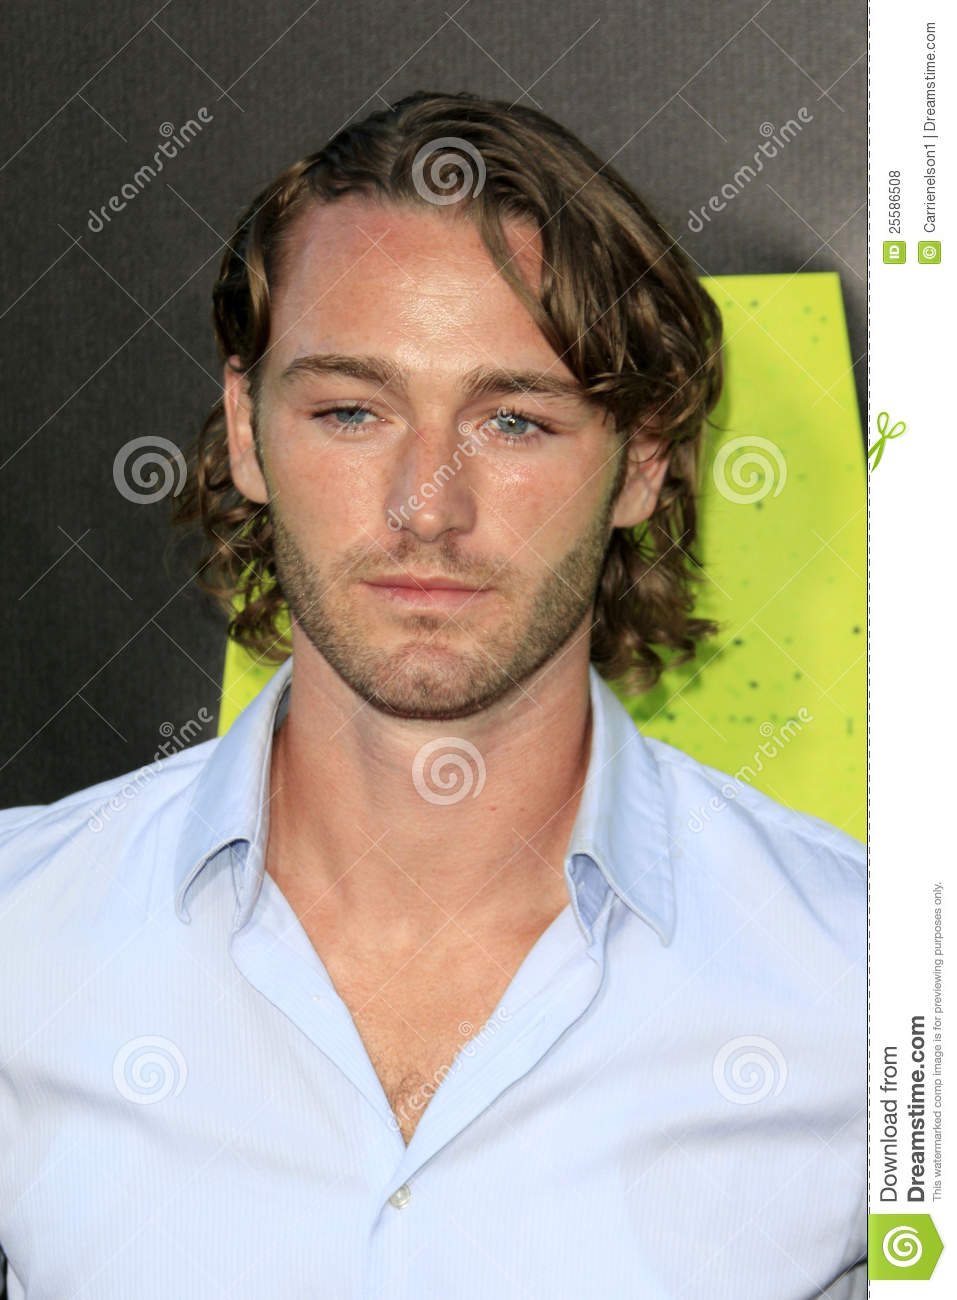 jake mclaughlin twitterjake mclaughlin csi, jake mclaughlin instagram, jake mclaughlin wife, jake mclaughlin filmography, jake mclaughlin, jake mclaughlin quantico, jake mclaughlin height, jake mclaughlin tumblr, jake mclaughlin photos, jake mclaughlin twitter, jake mclaughlin daughter, jake mclaughlin shirtless, jake mclaughlin grey's anatomy, jake mclaughlin married, jake mclaughlin family, jake mclaughlin net worth, jake mclaughlin imdb, jake mclaughlin facebook, jake mclaughlin hockey, jake mclaughlin movies and tv shows